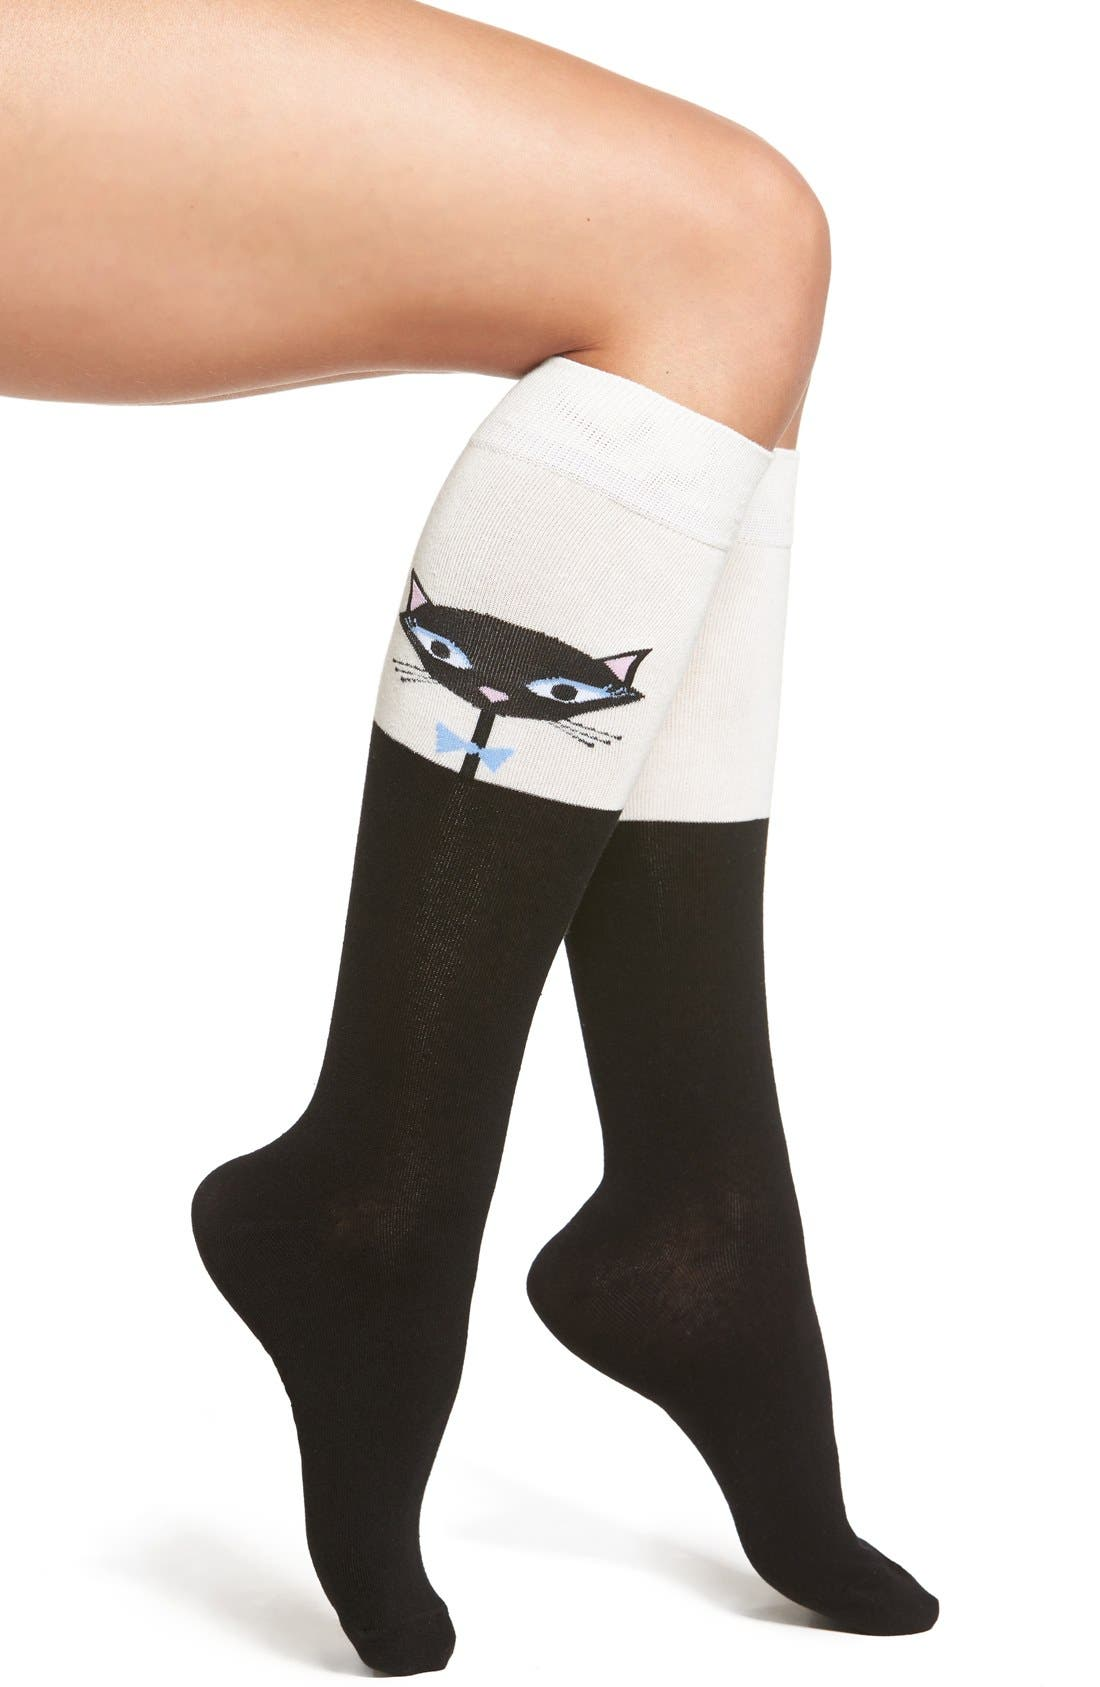 Main Image - kate spade new york cool cat knee high socks